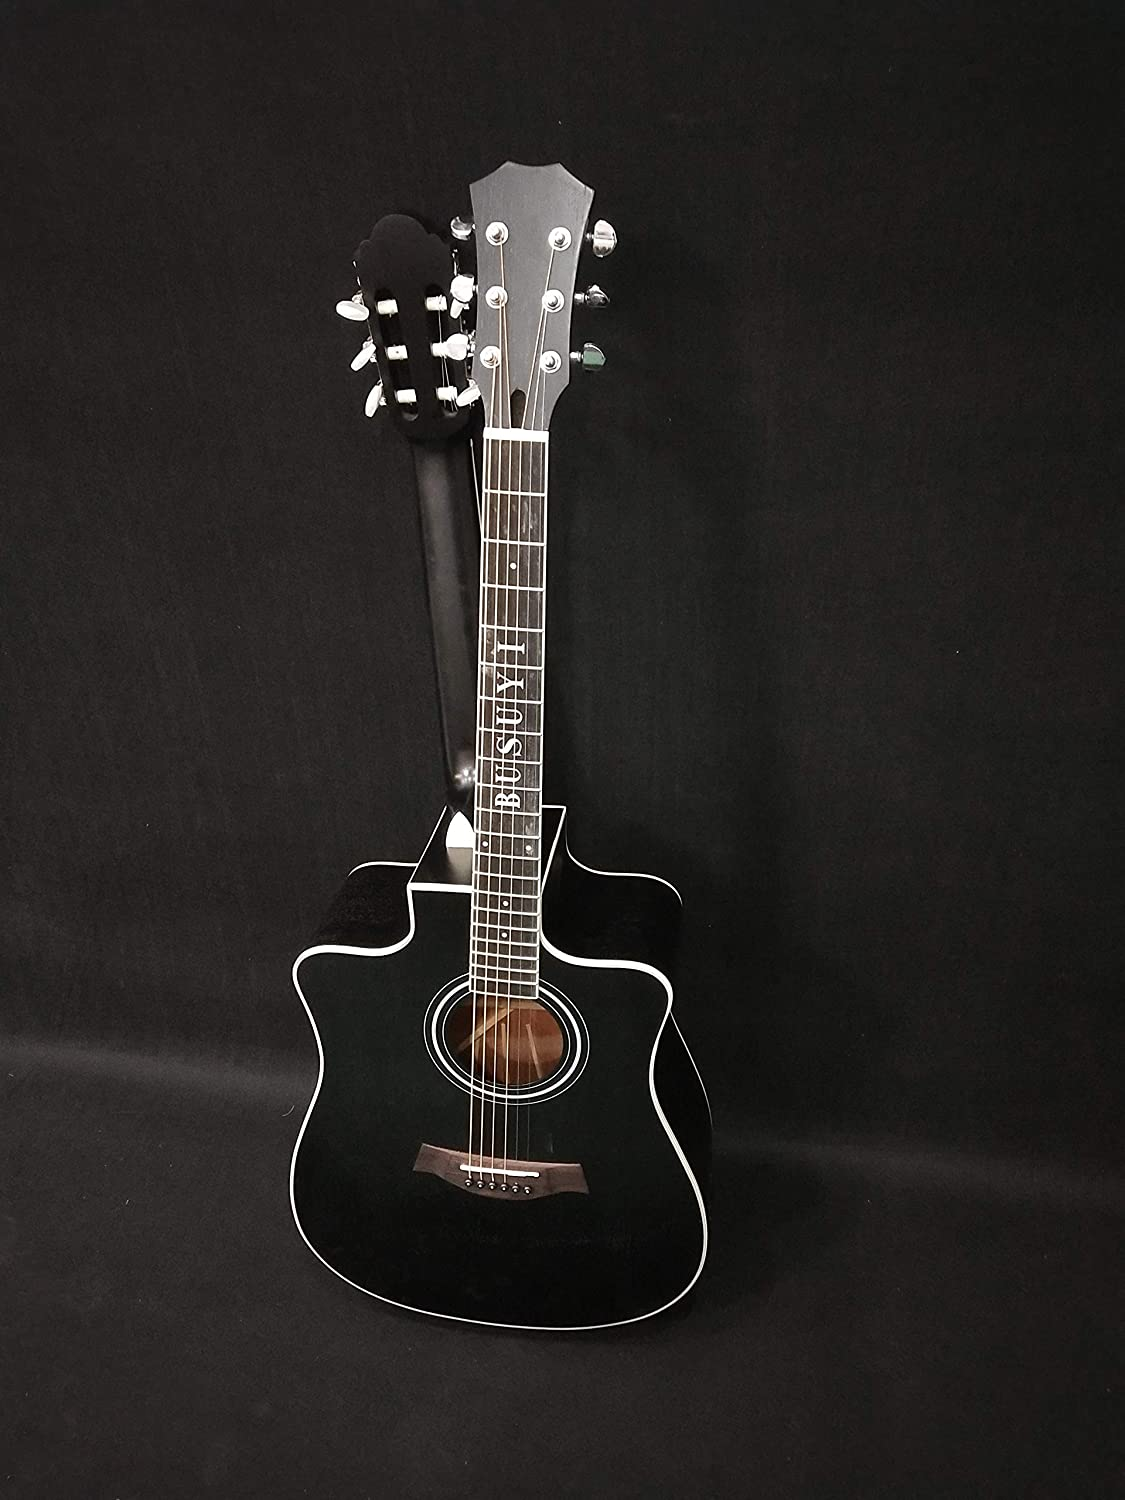 6 Strings Classical/ 6 Strings Acoustic Double Neck,Double Sided Busuyi Guitar 2020 NP